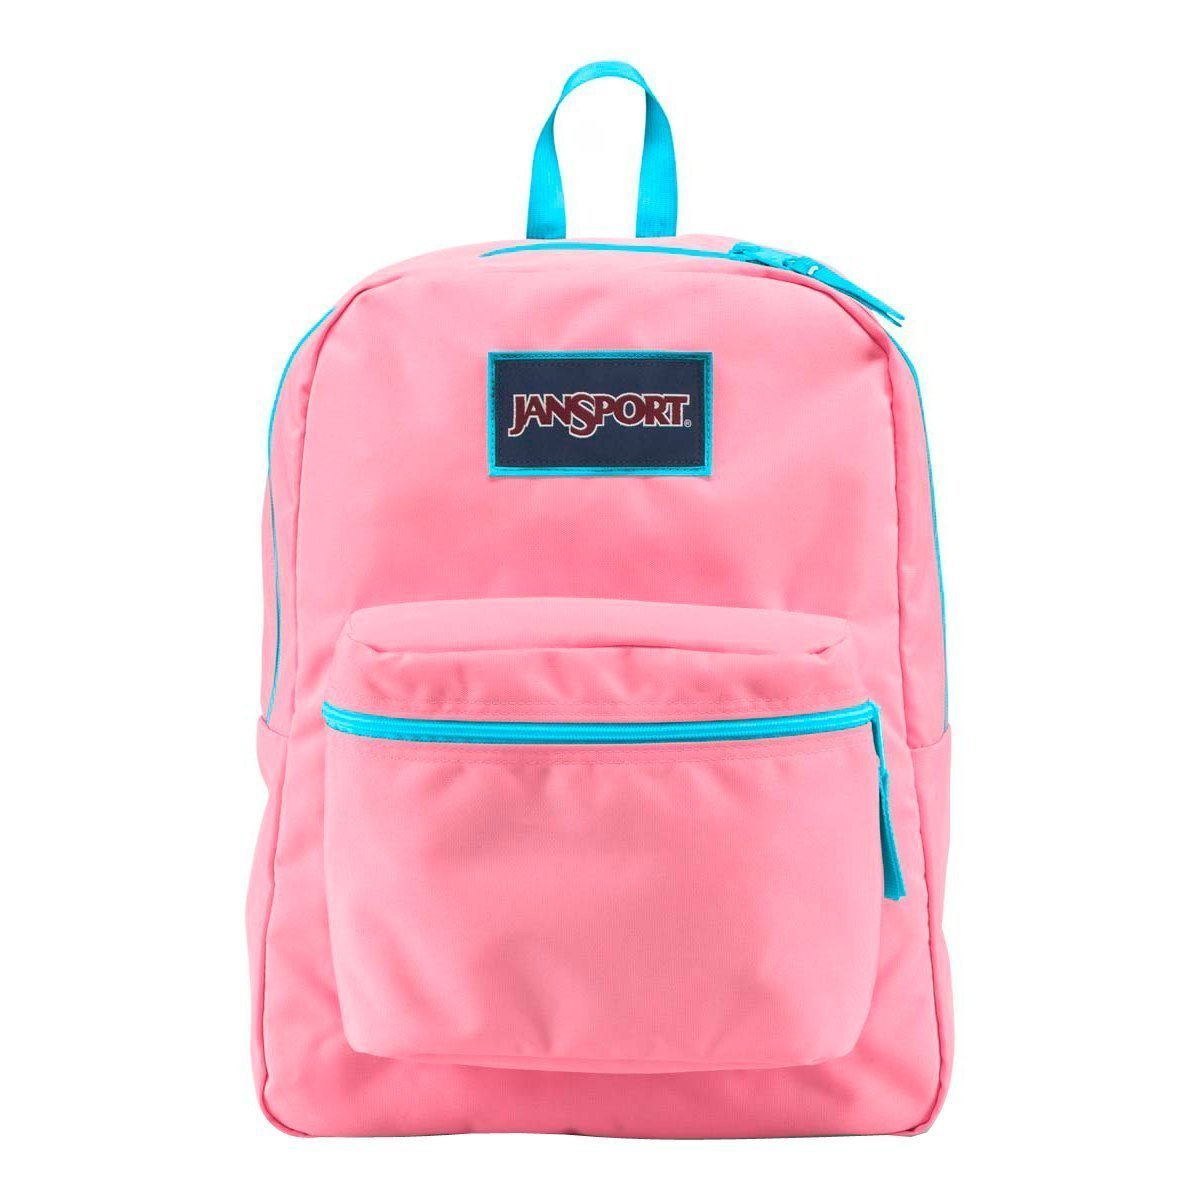 Galleon - JanSport Women s Overexposed Pink Pansy Mammoth Blue Backpack 77cc510a6cff8